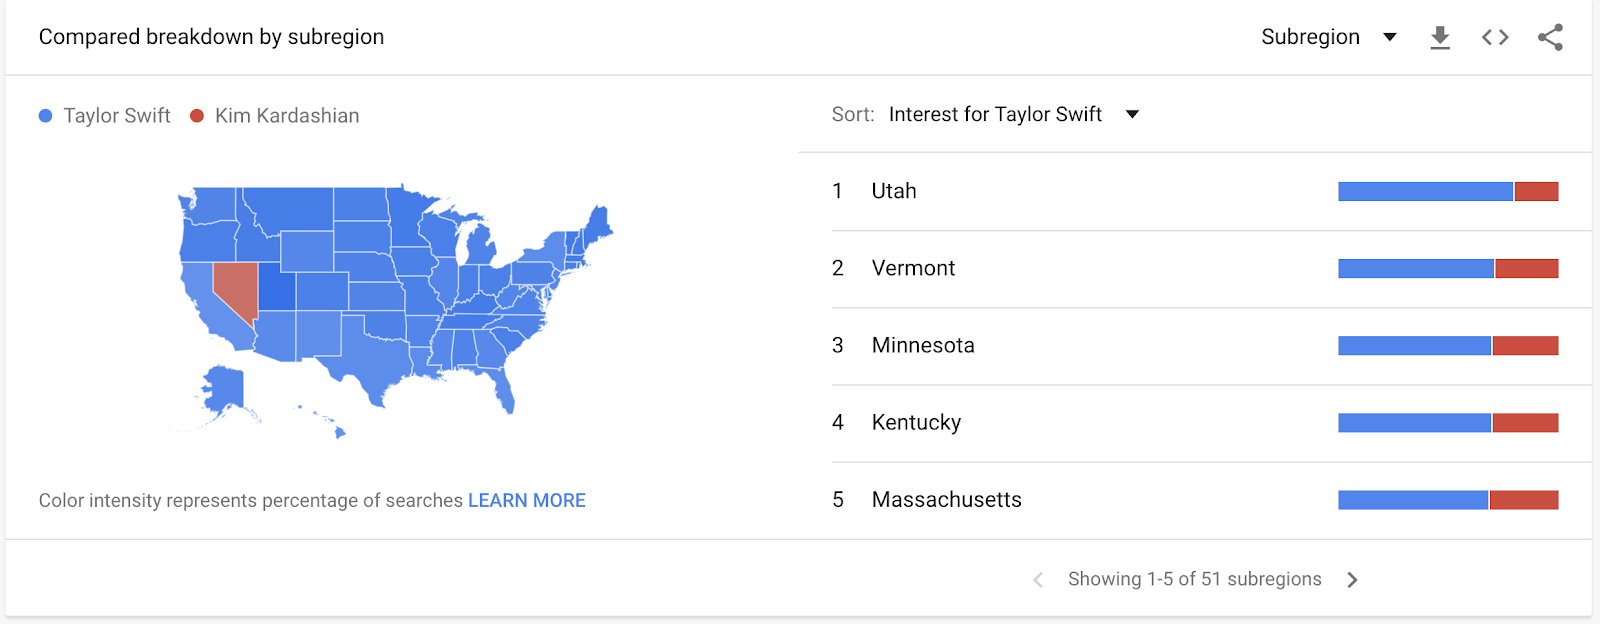 Google trends example using Taylor Swift and Kim Kardashian popularity.